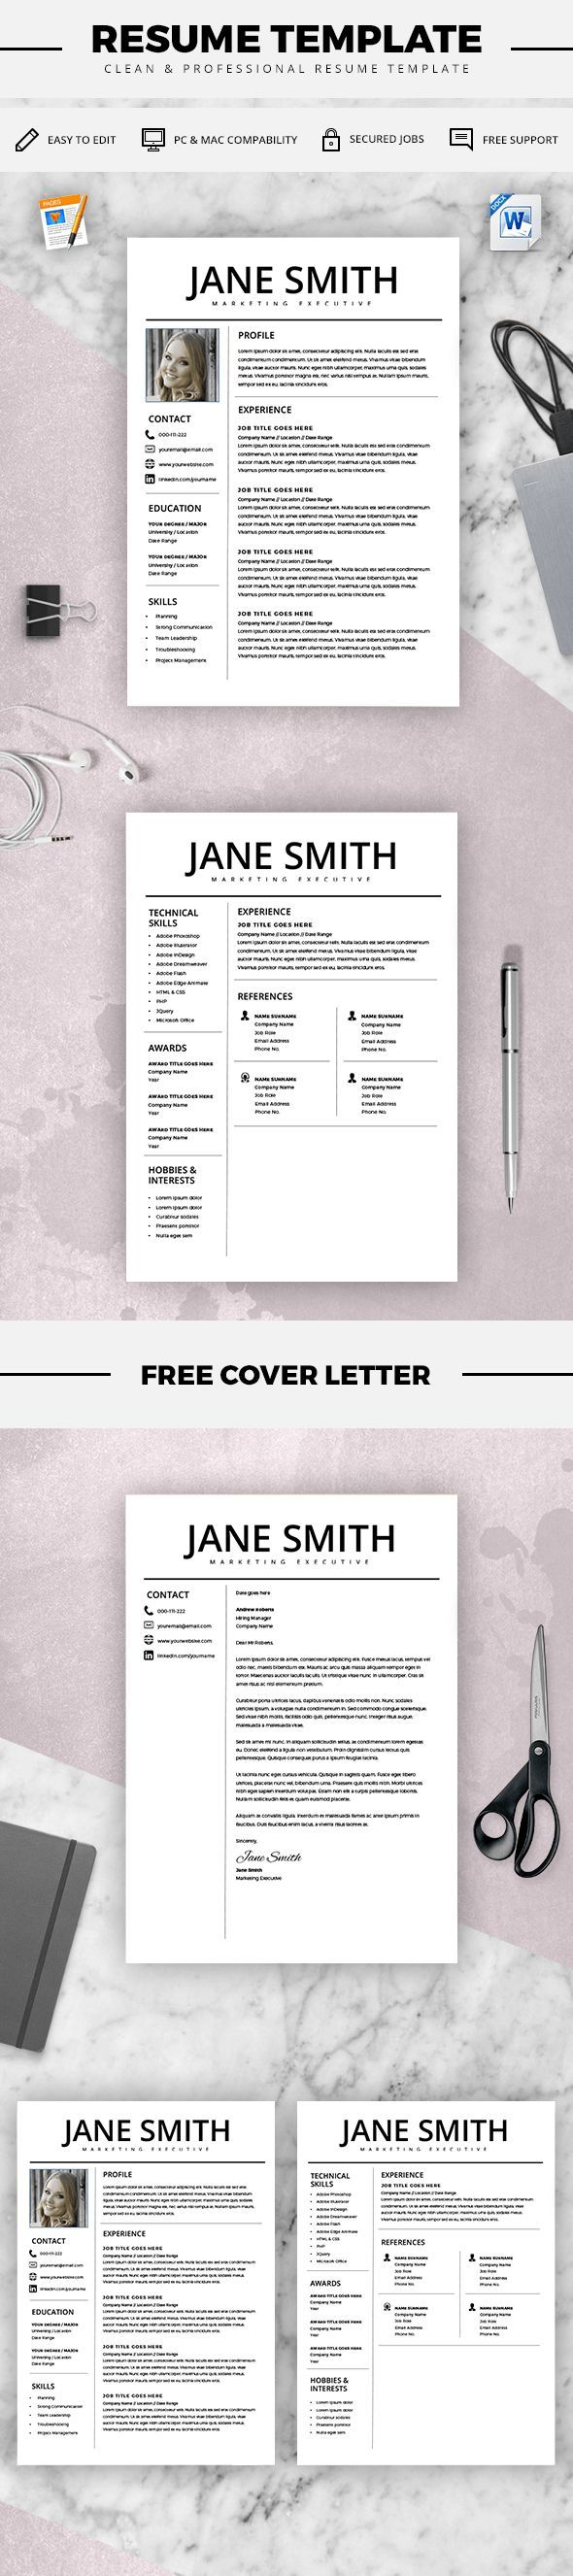 Professional Resume Template   MS Word Compatible   Best CV Template +  Cover Letter   Mac